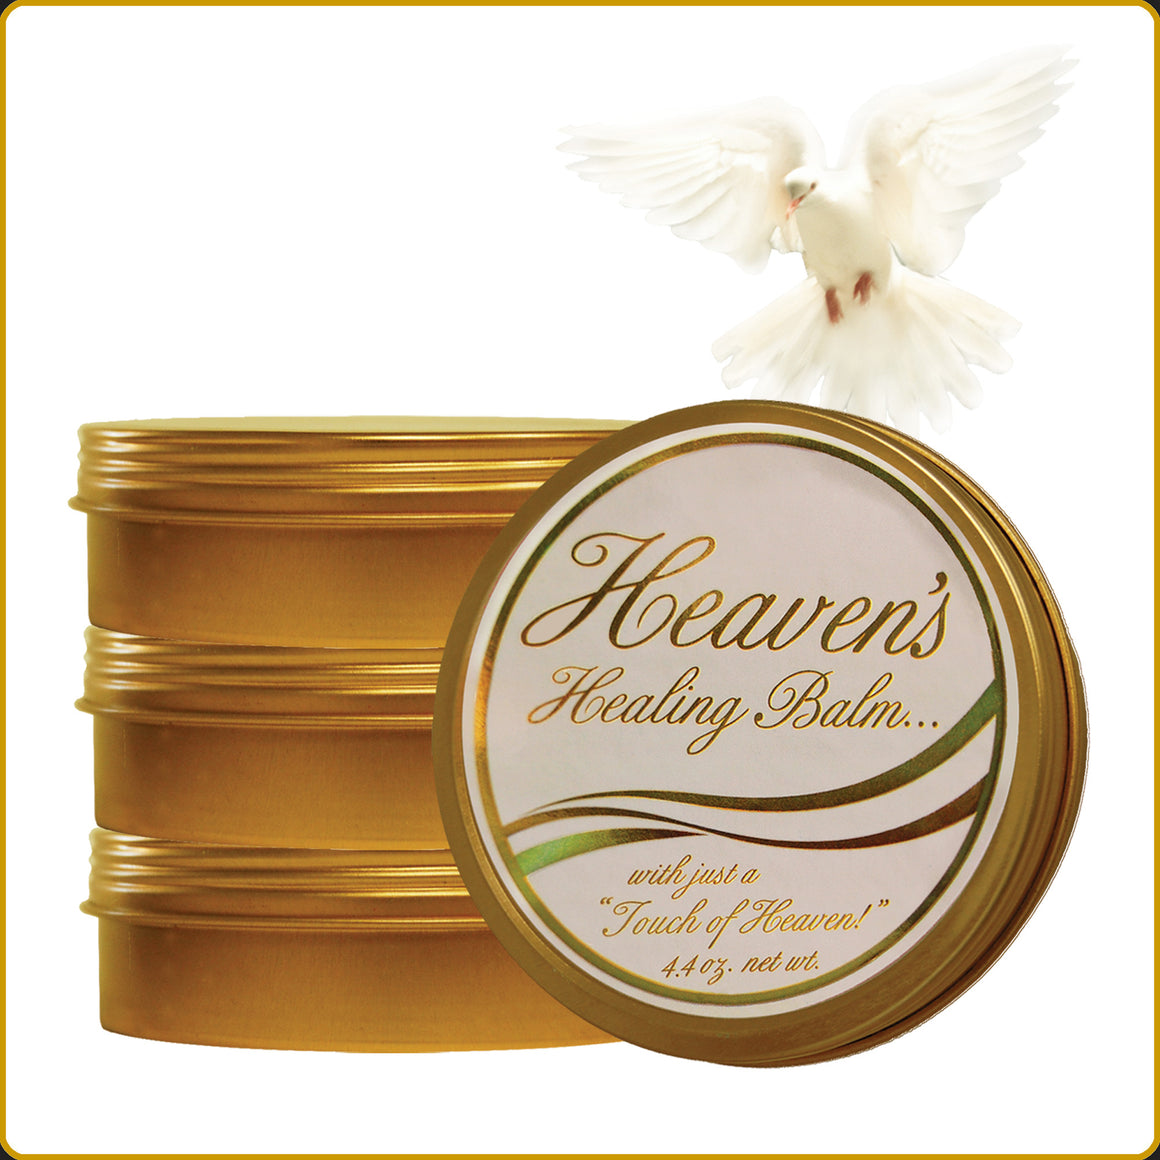 Heaven's Healing Balm 4 - Pack Special with FREE SHIPPING!